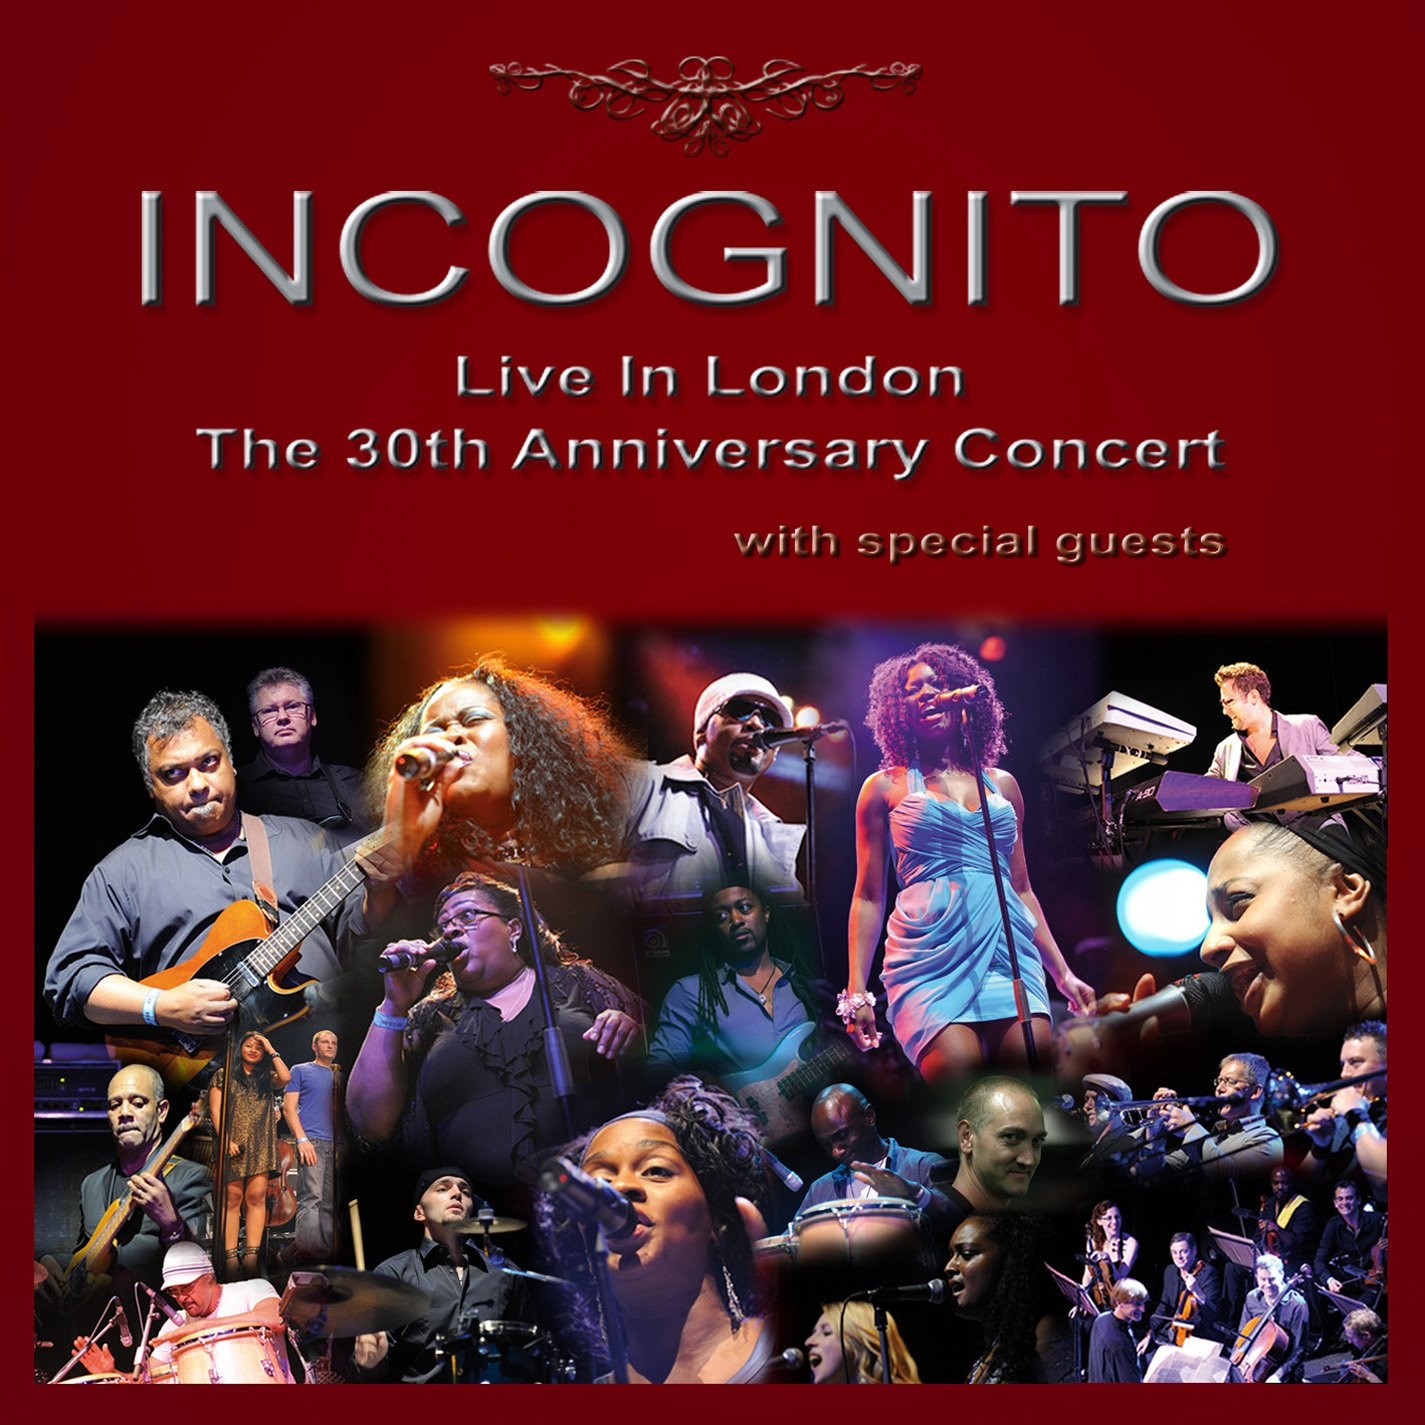 Incognito Live In London: The 30th Anniversary Concert by inakustik Label Group